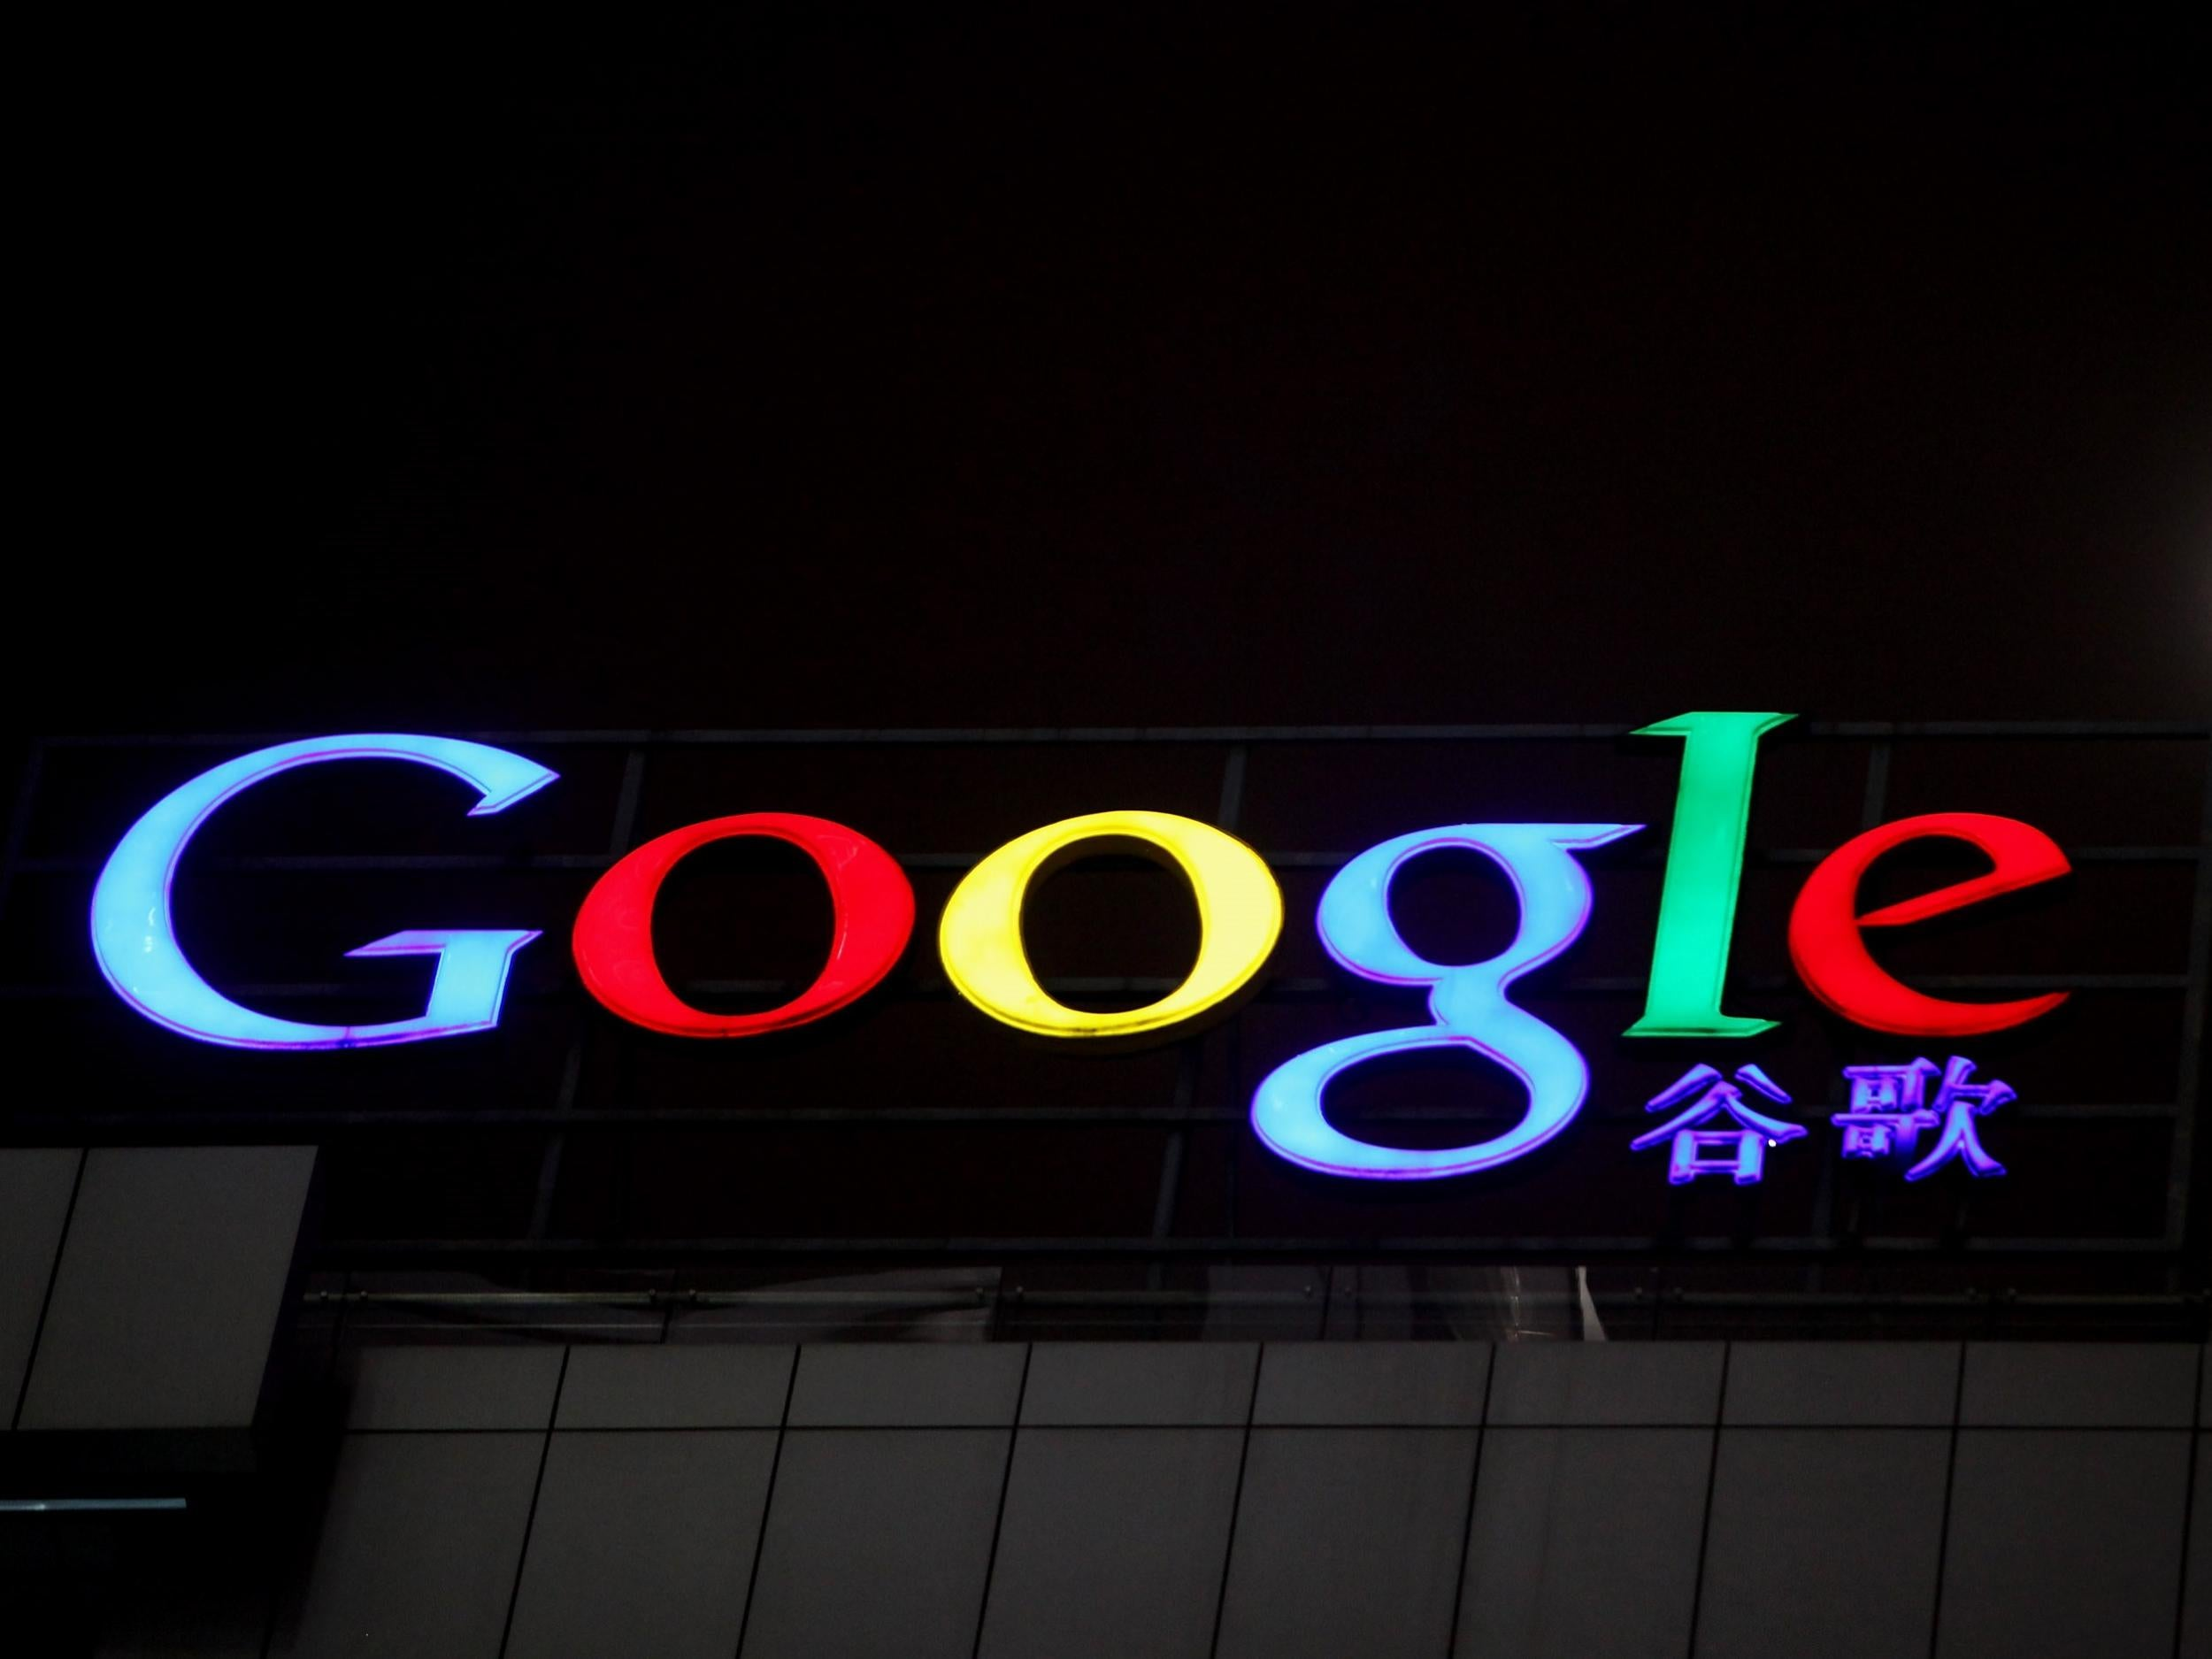 Google employees suspect it is still working on secret Chinese 'Dragonfly' project